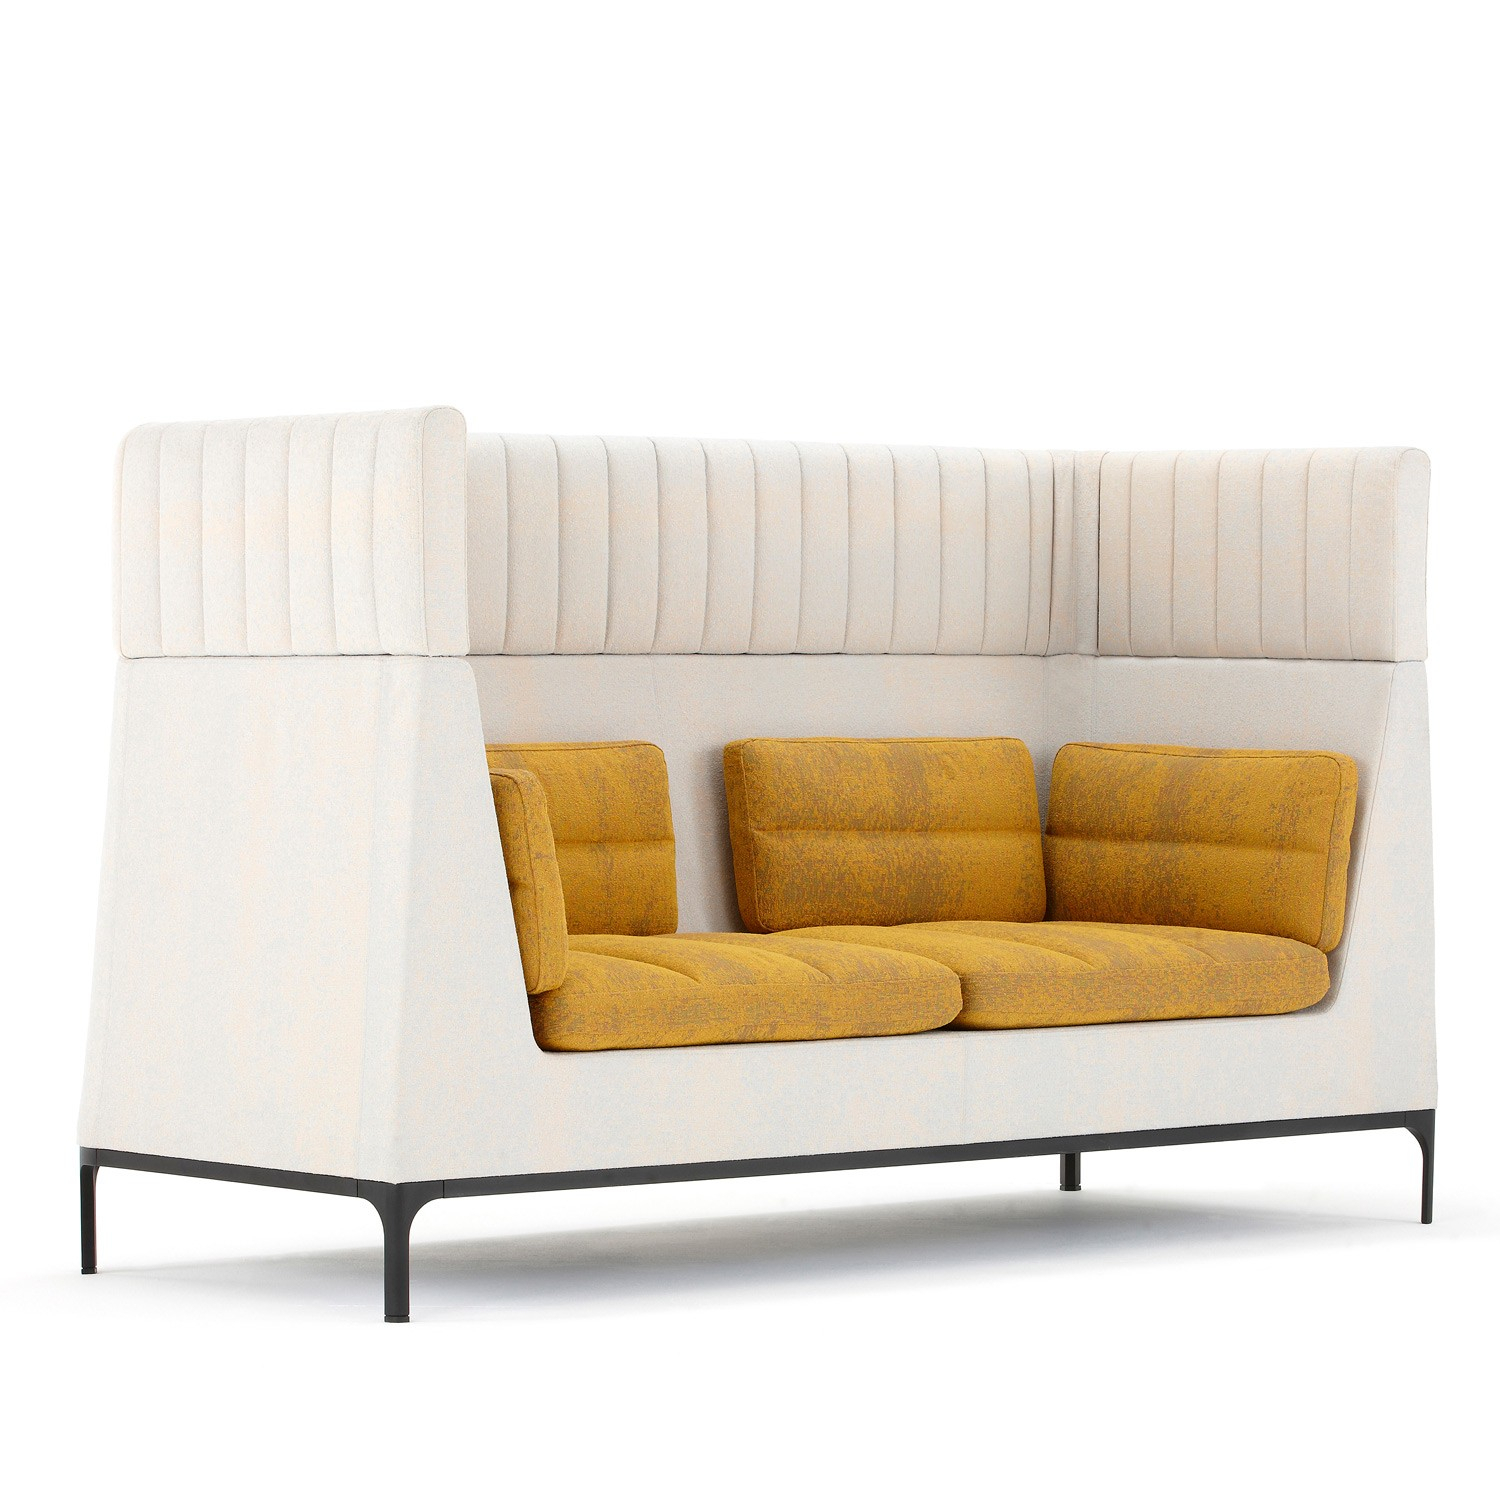 Haven High Back Sofa | Haven Acoustic Soft Seating | Apres Furniture Regarding Haven Sofa Chairs (View 5 of 25)